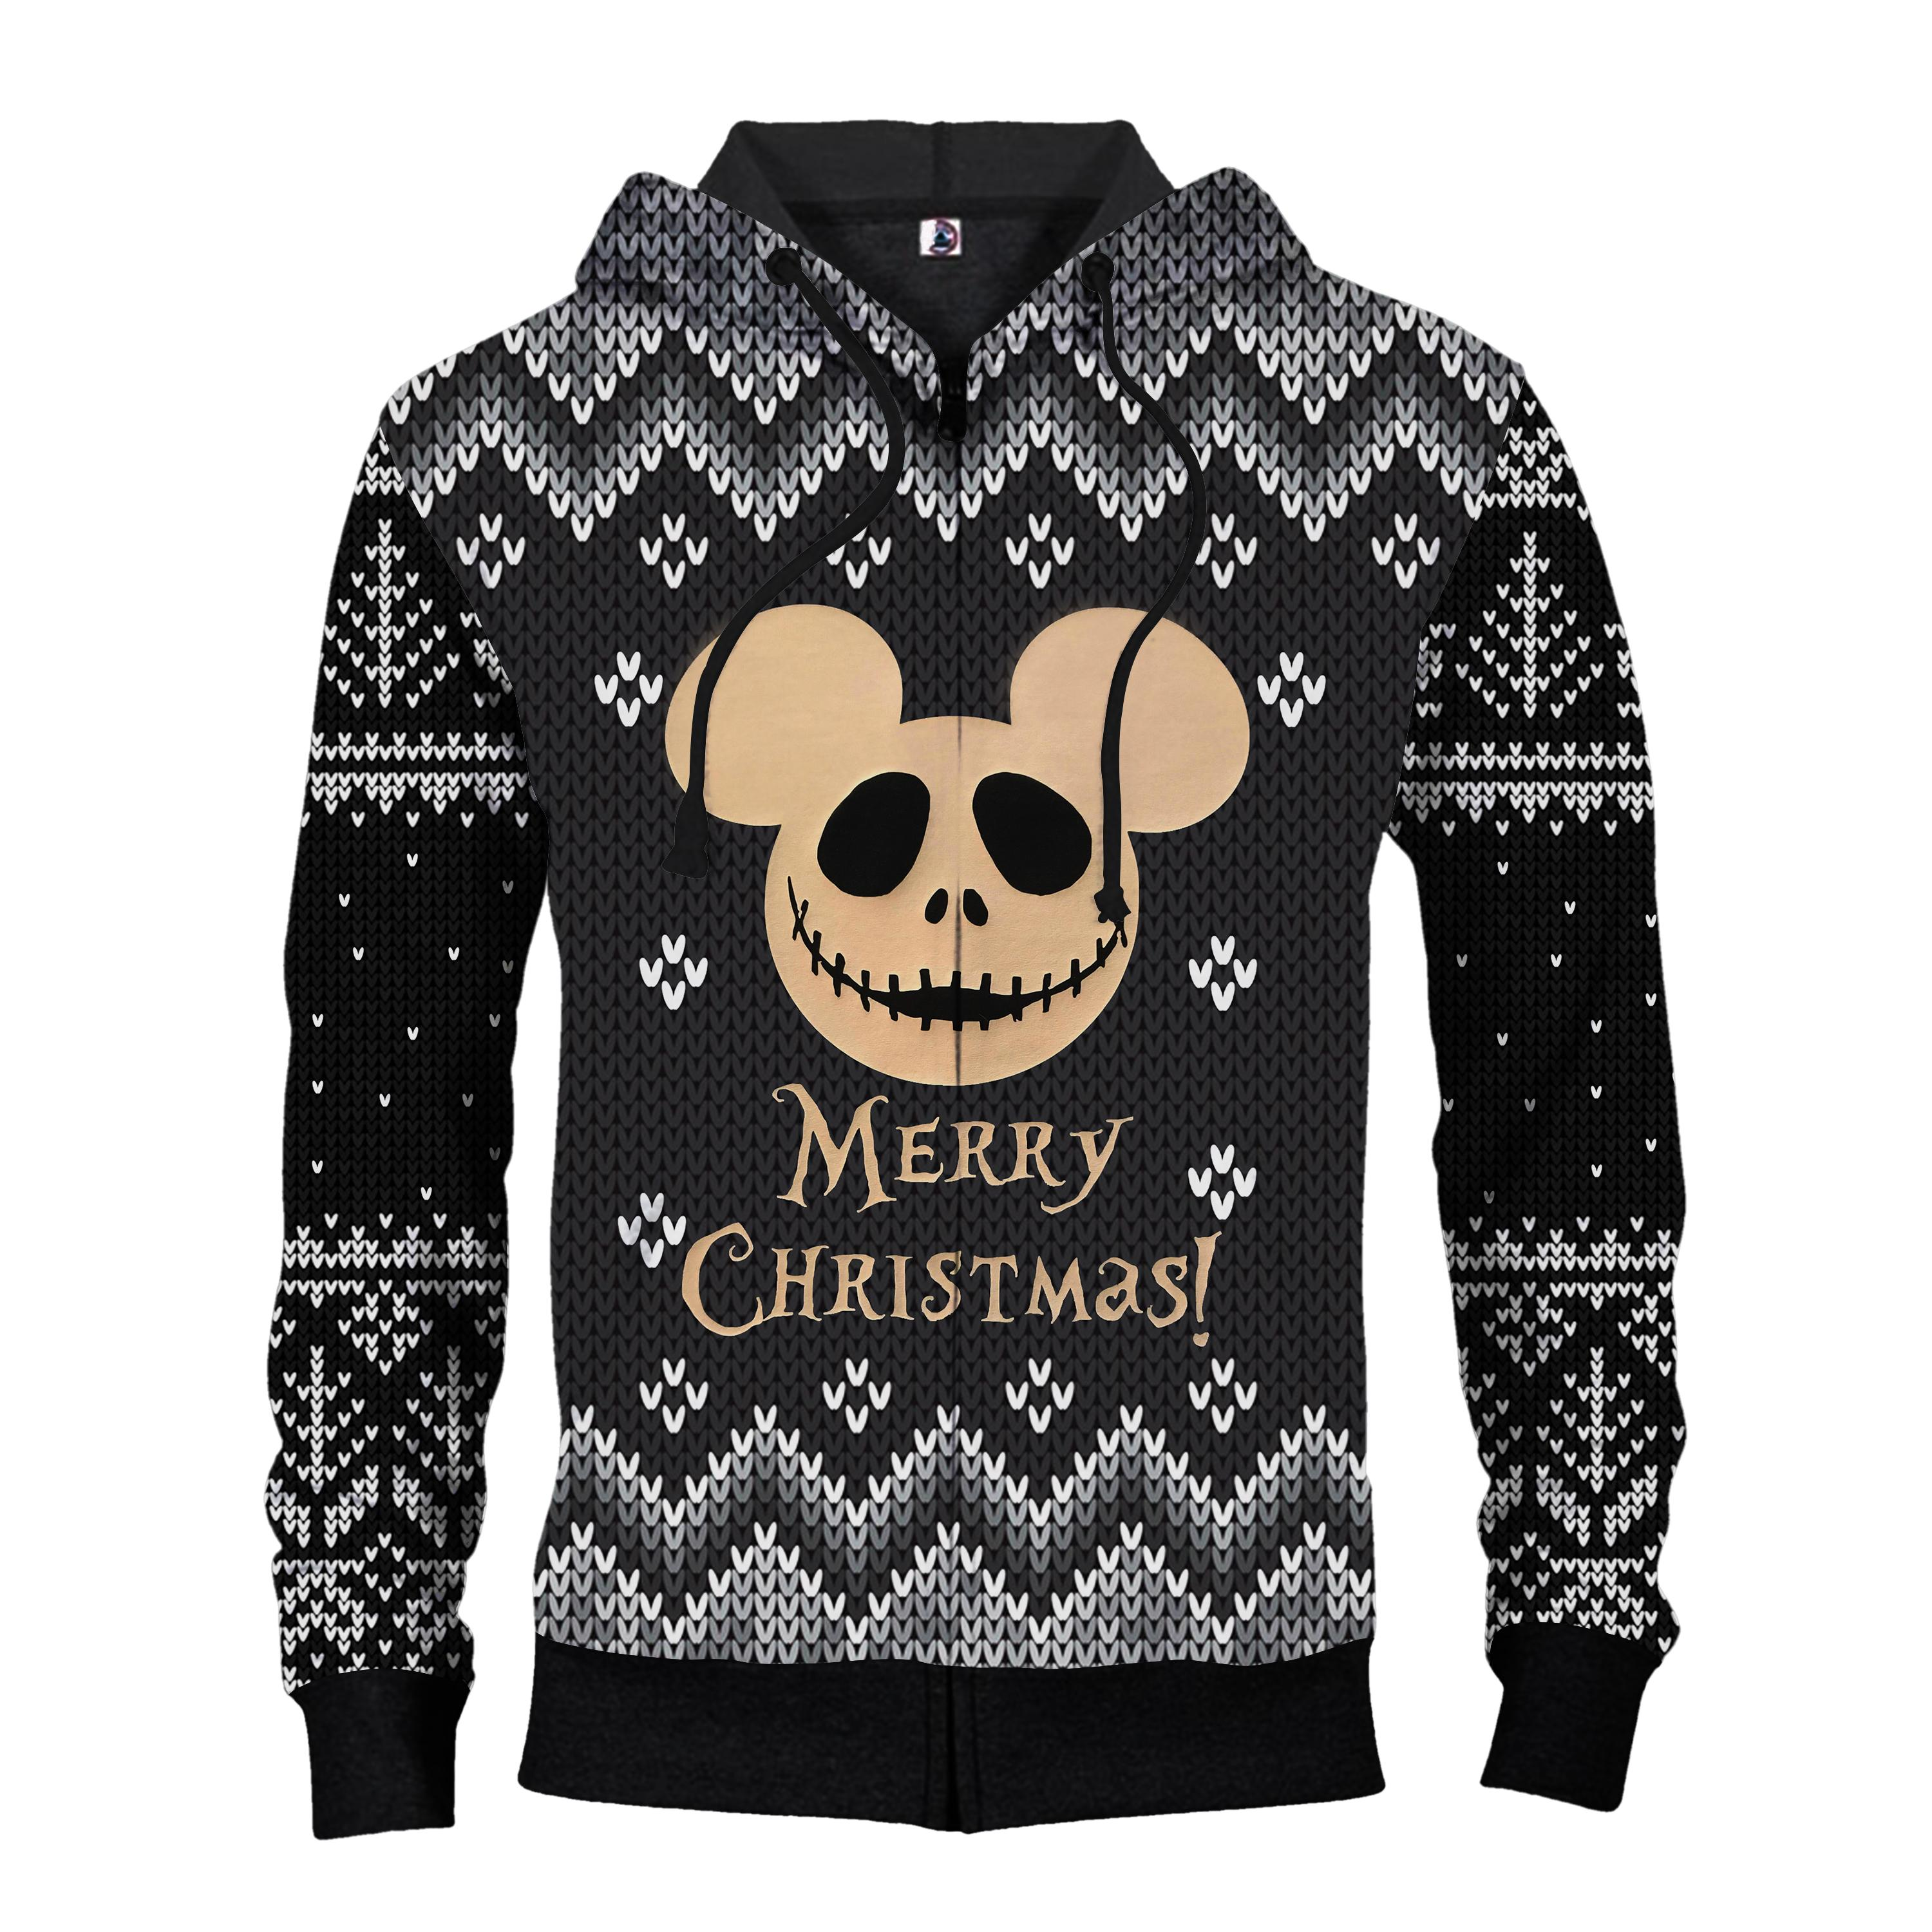 Jack skellington mickey mouse merry christmas all over print zip hoodie